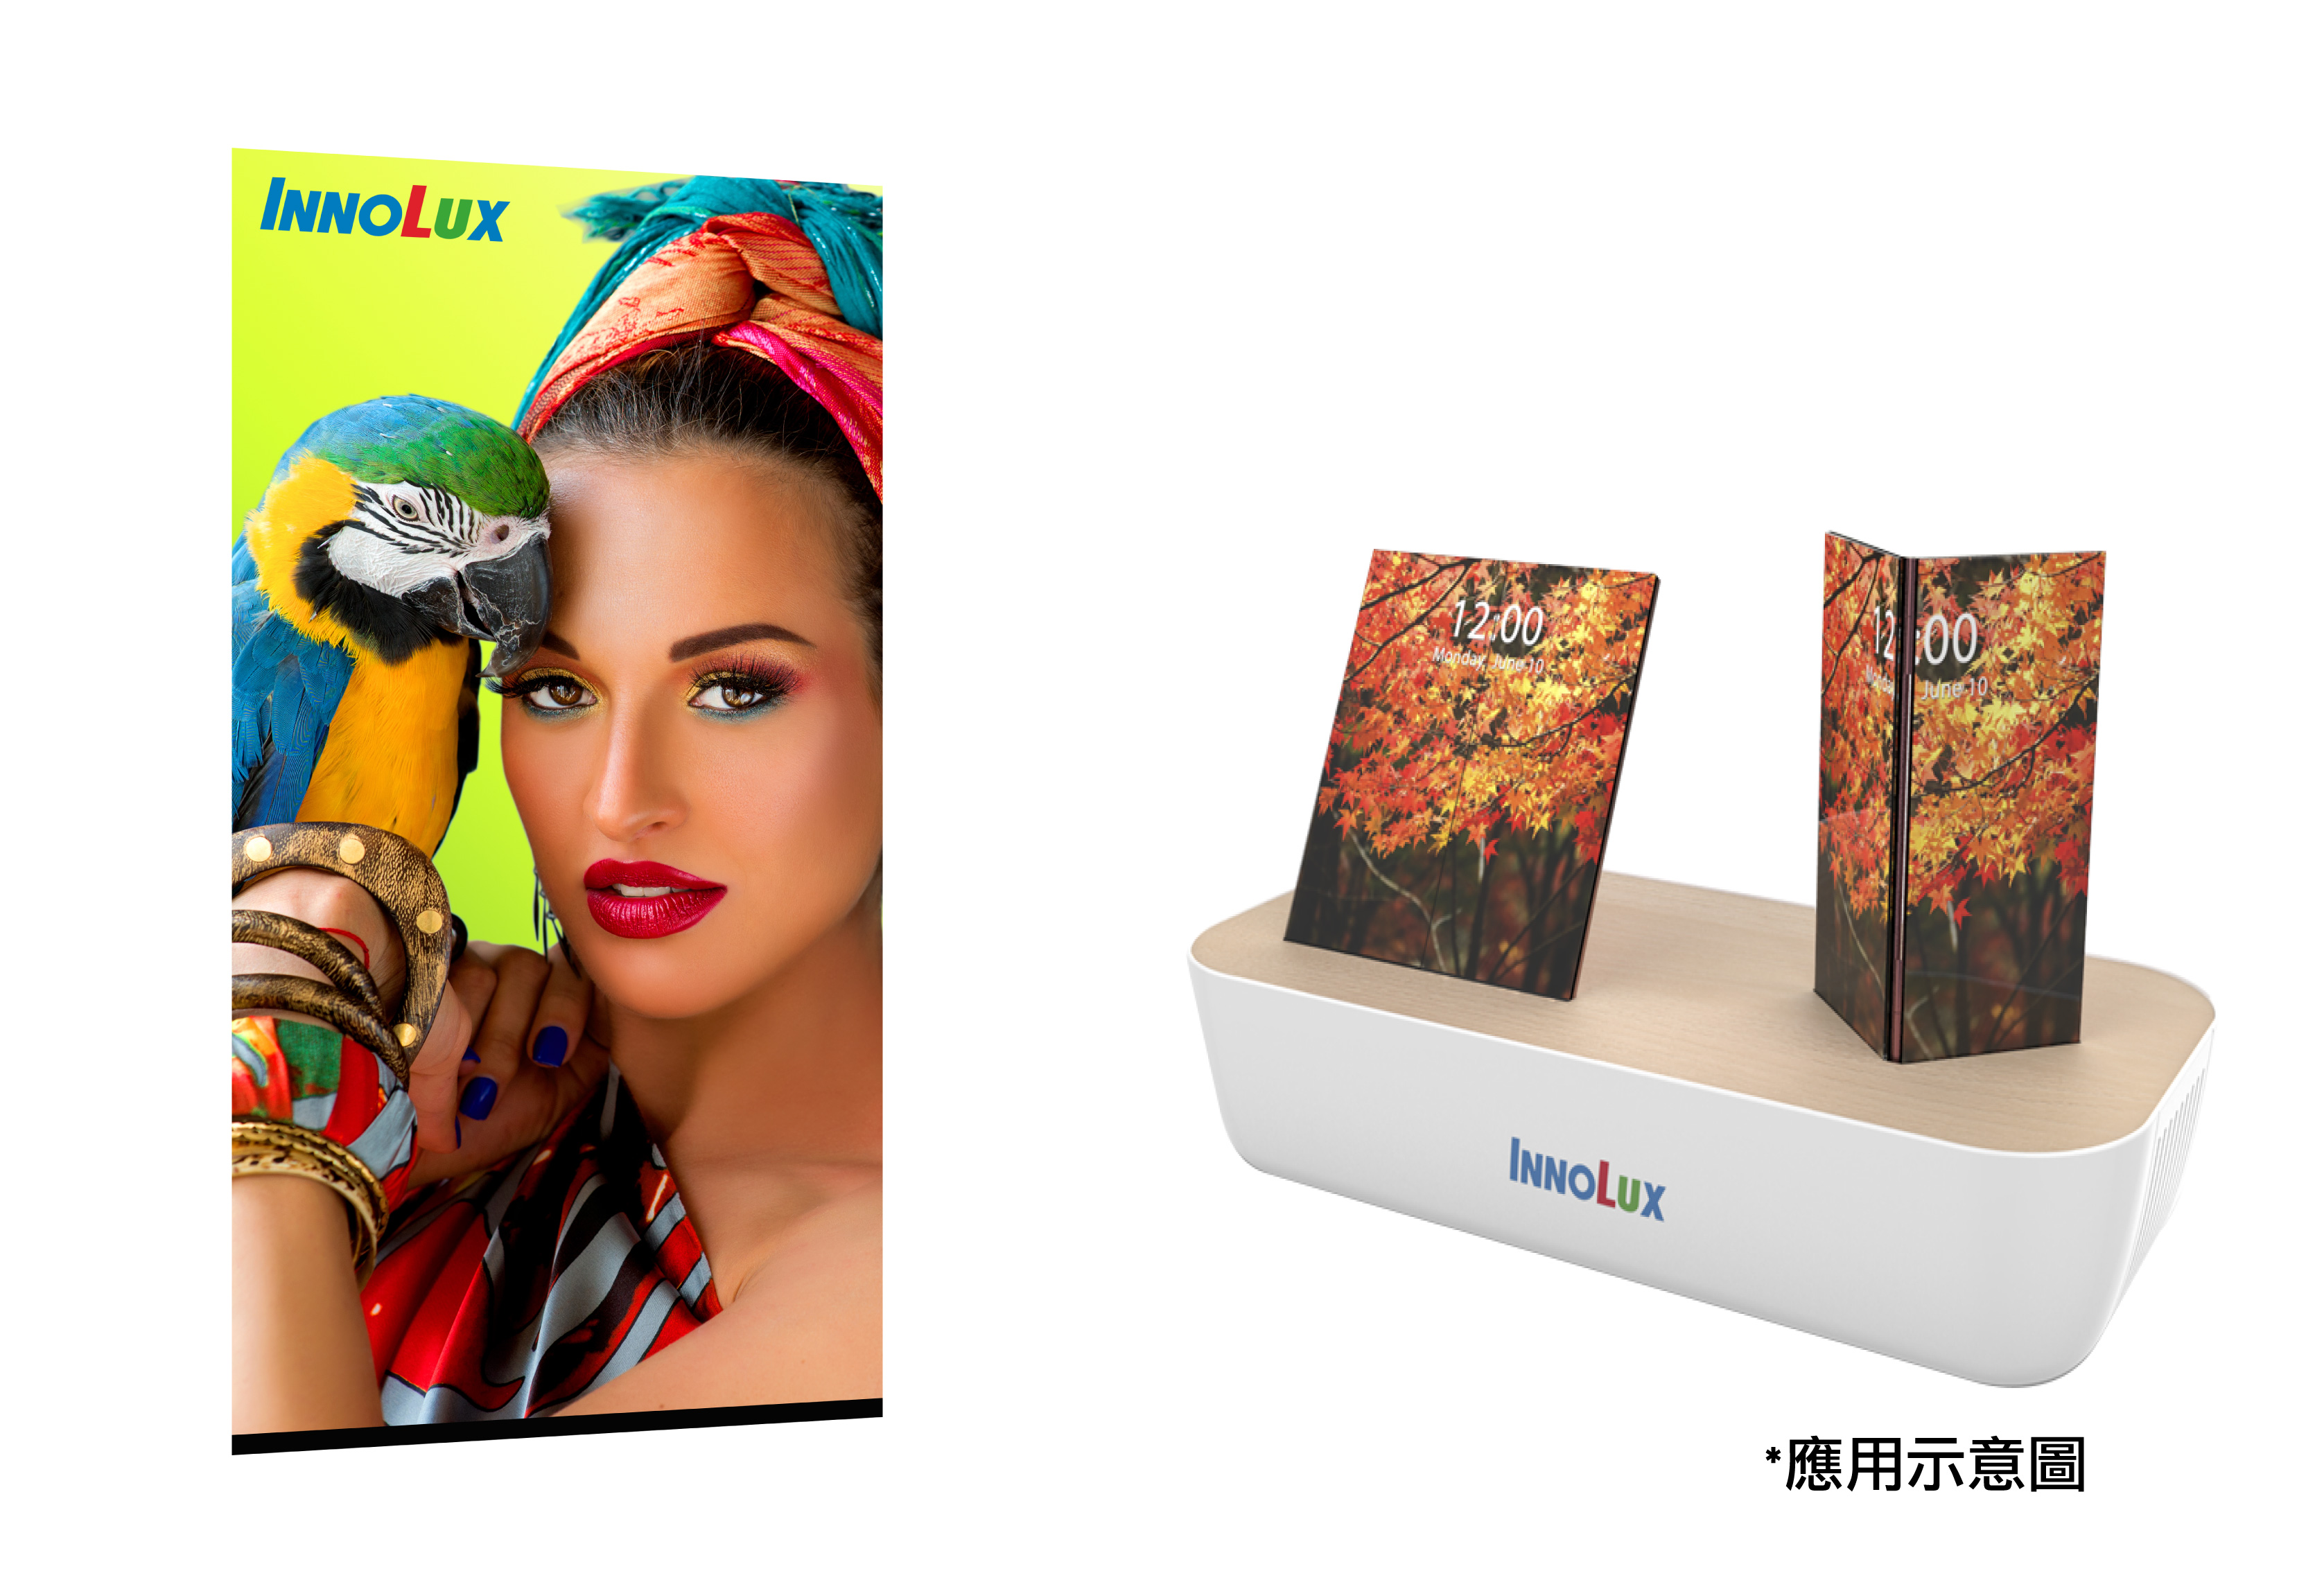 """5.99"""" Full Screen Display with Ultra Narrow Down Border-ODTG Technology and Applications"""